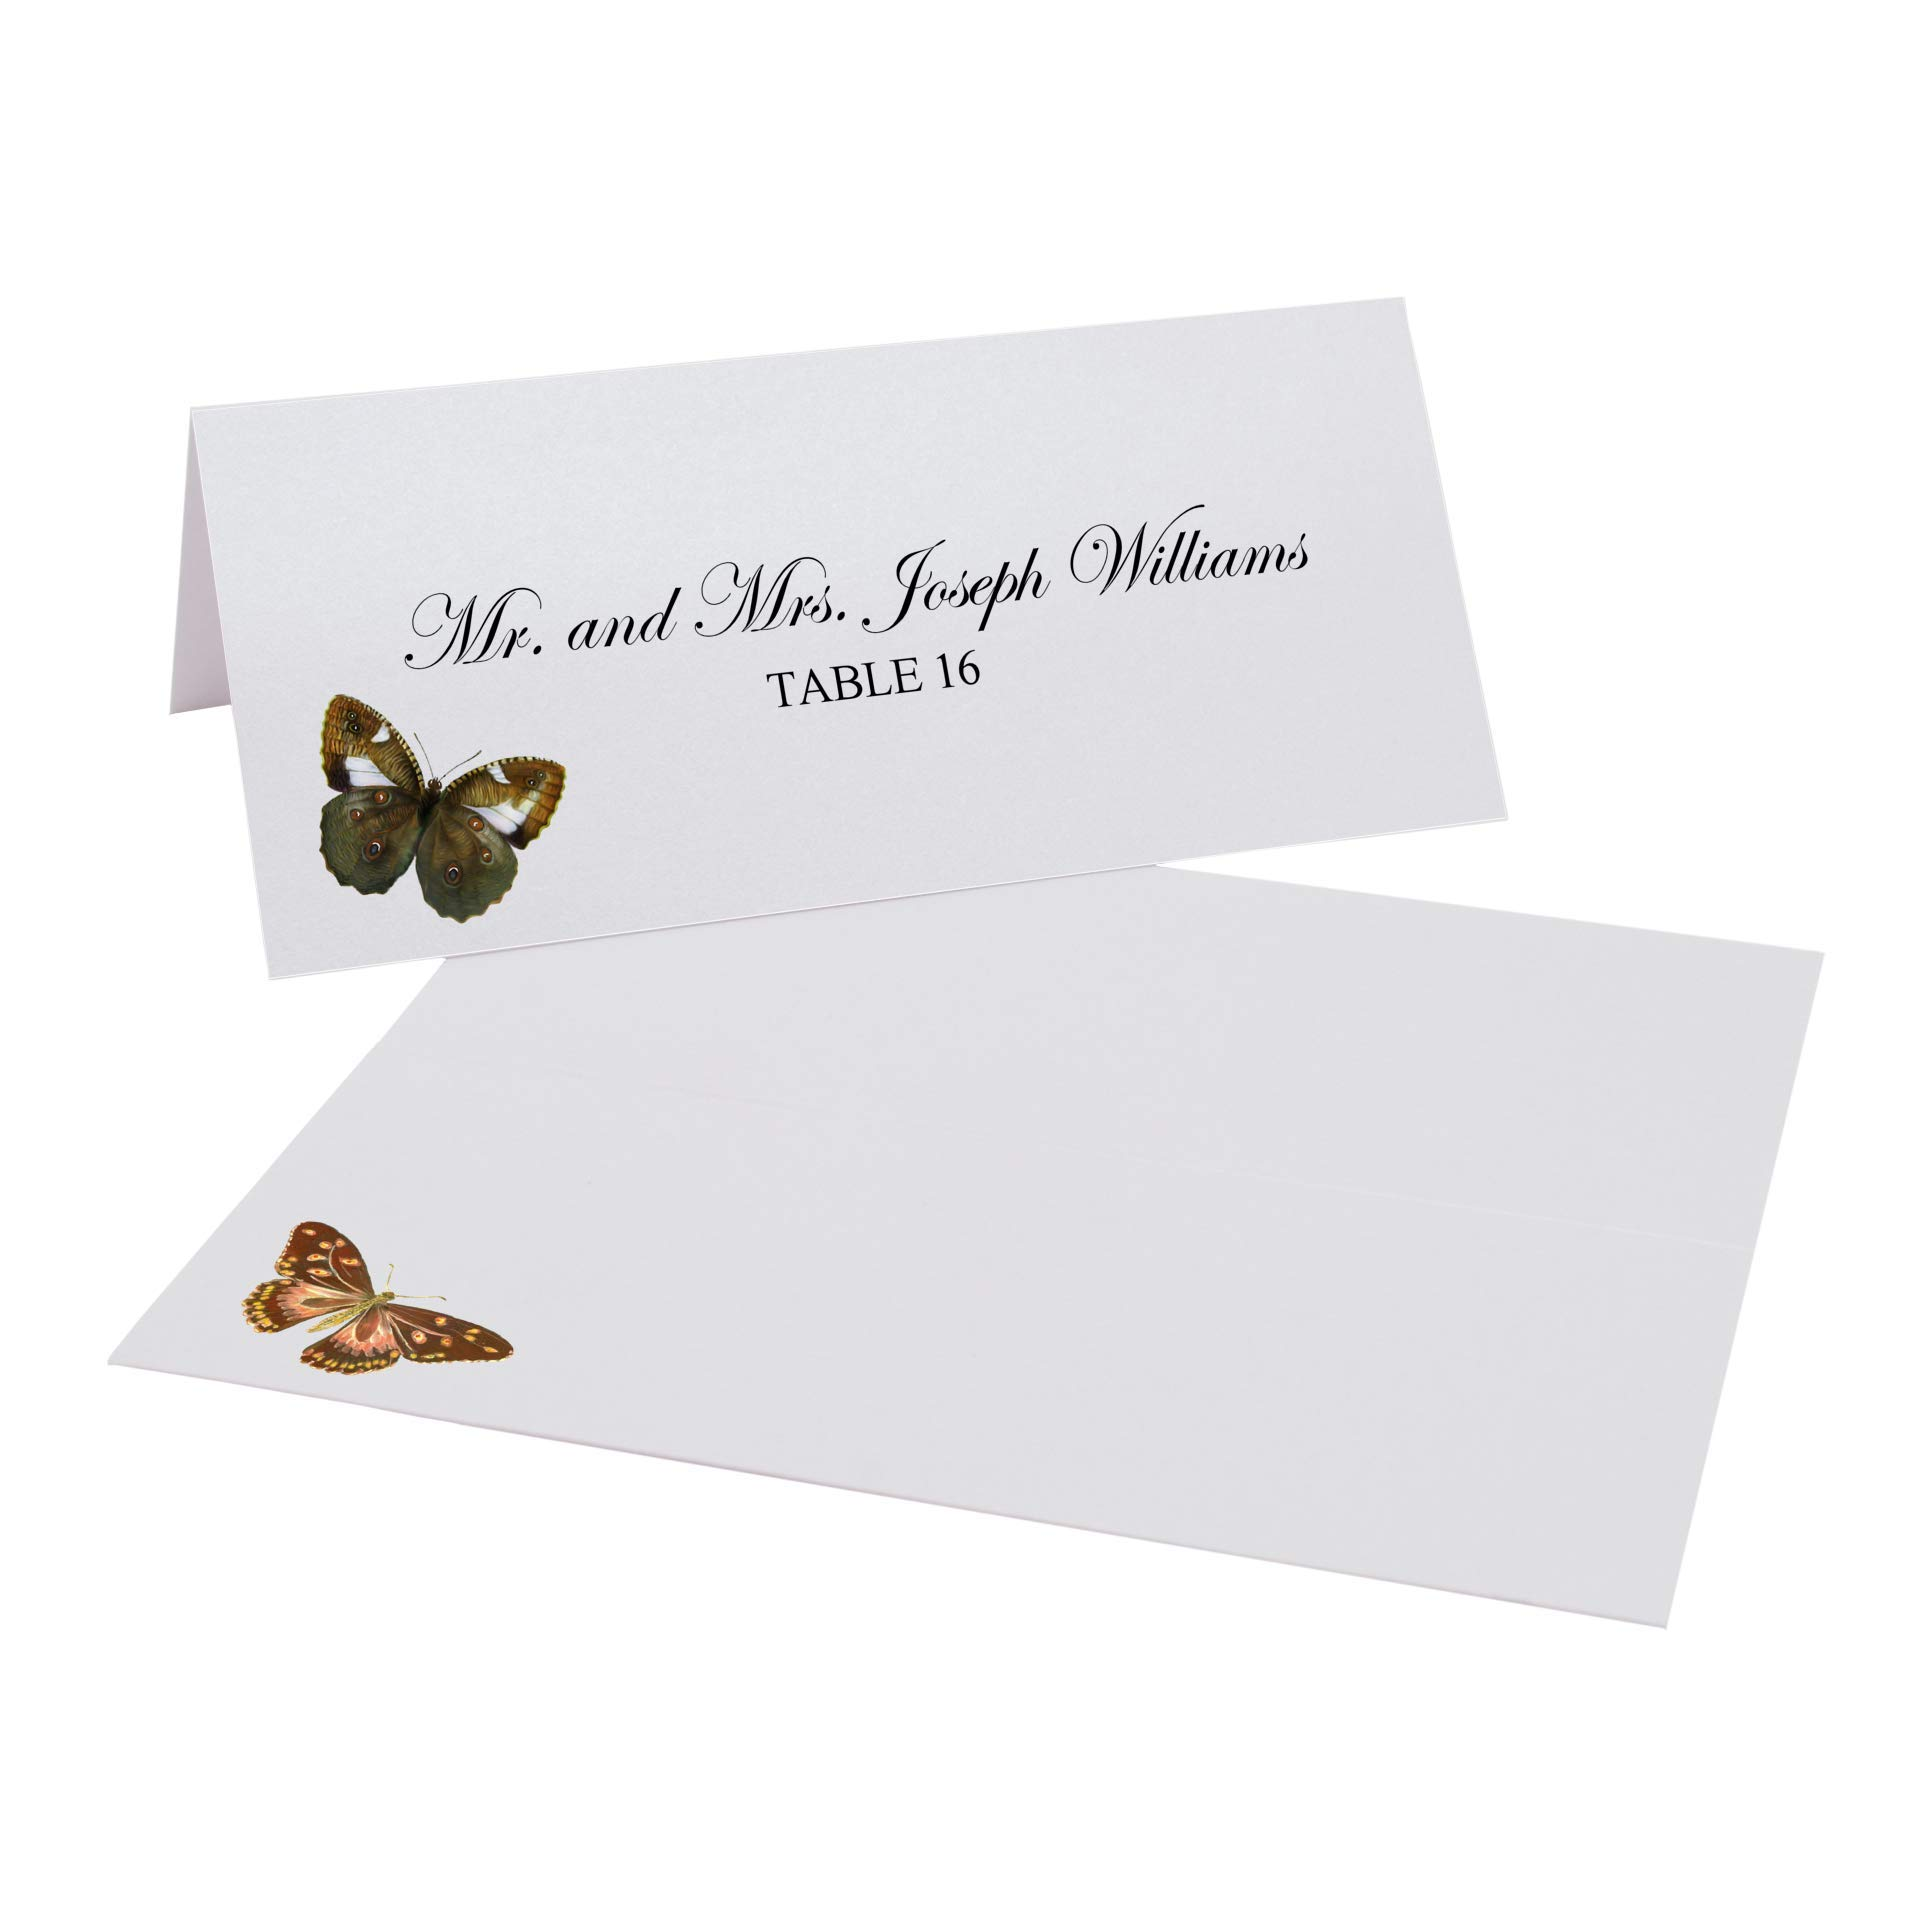 Documents and Designs Assorted Butterflies Place Cards, Set of 150